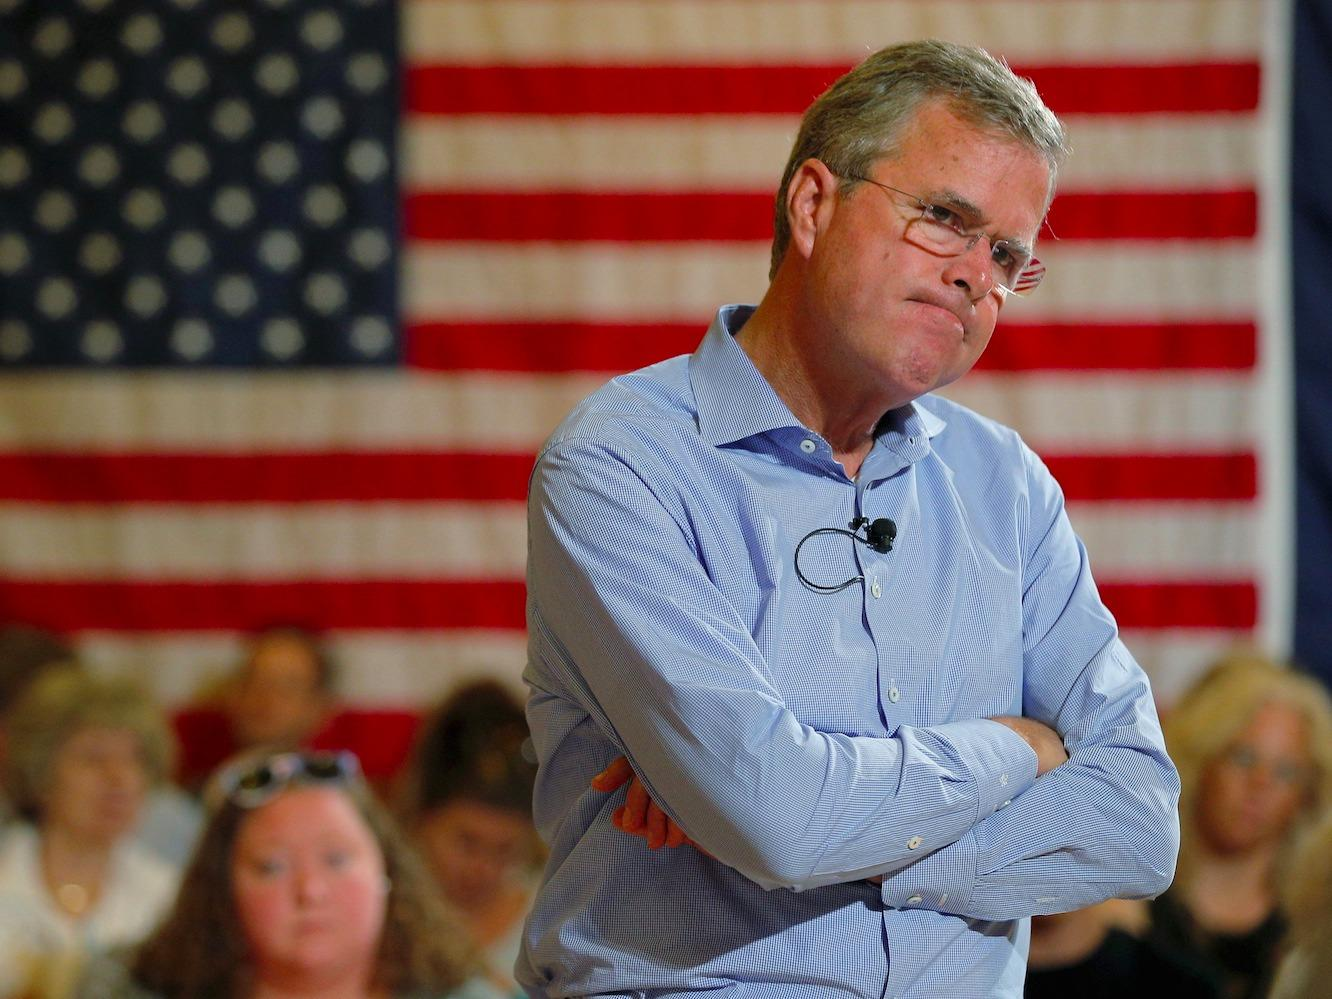 After Donald Trump goes nuclear on Jeb Bush, Jeb responds that Trump is soft on crime